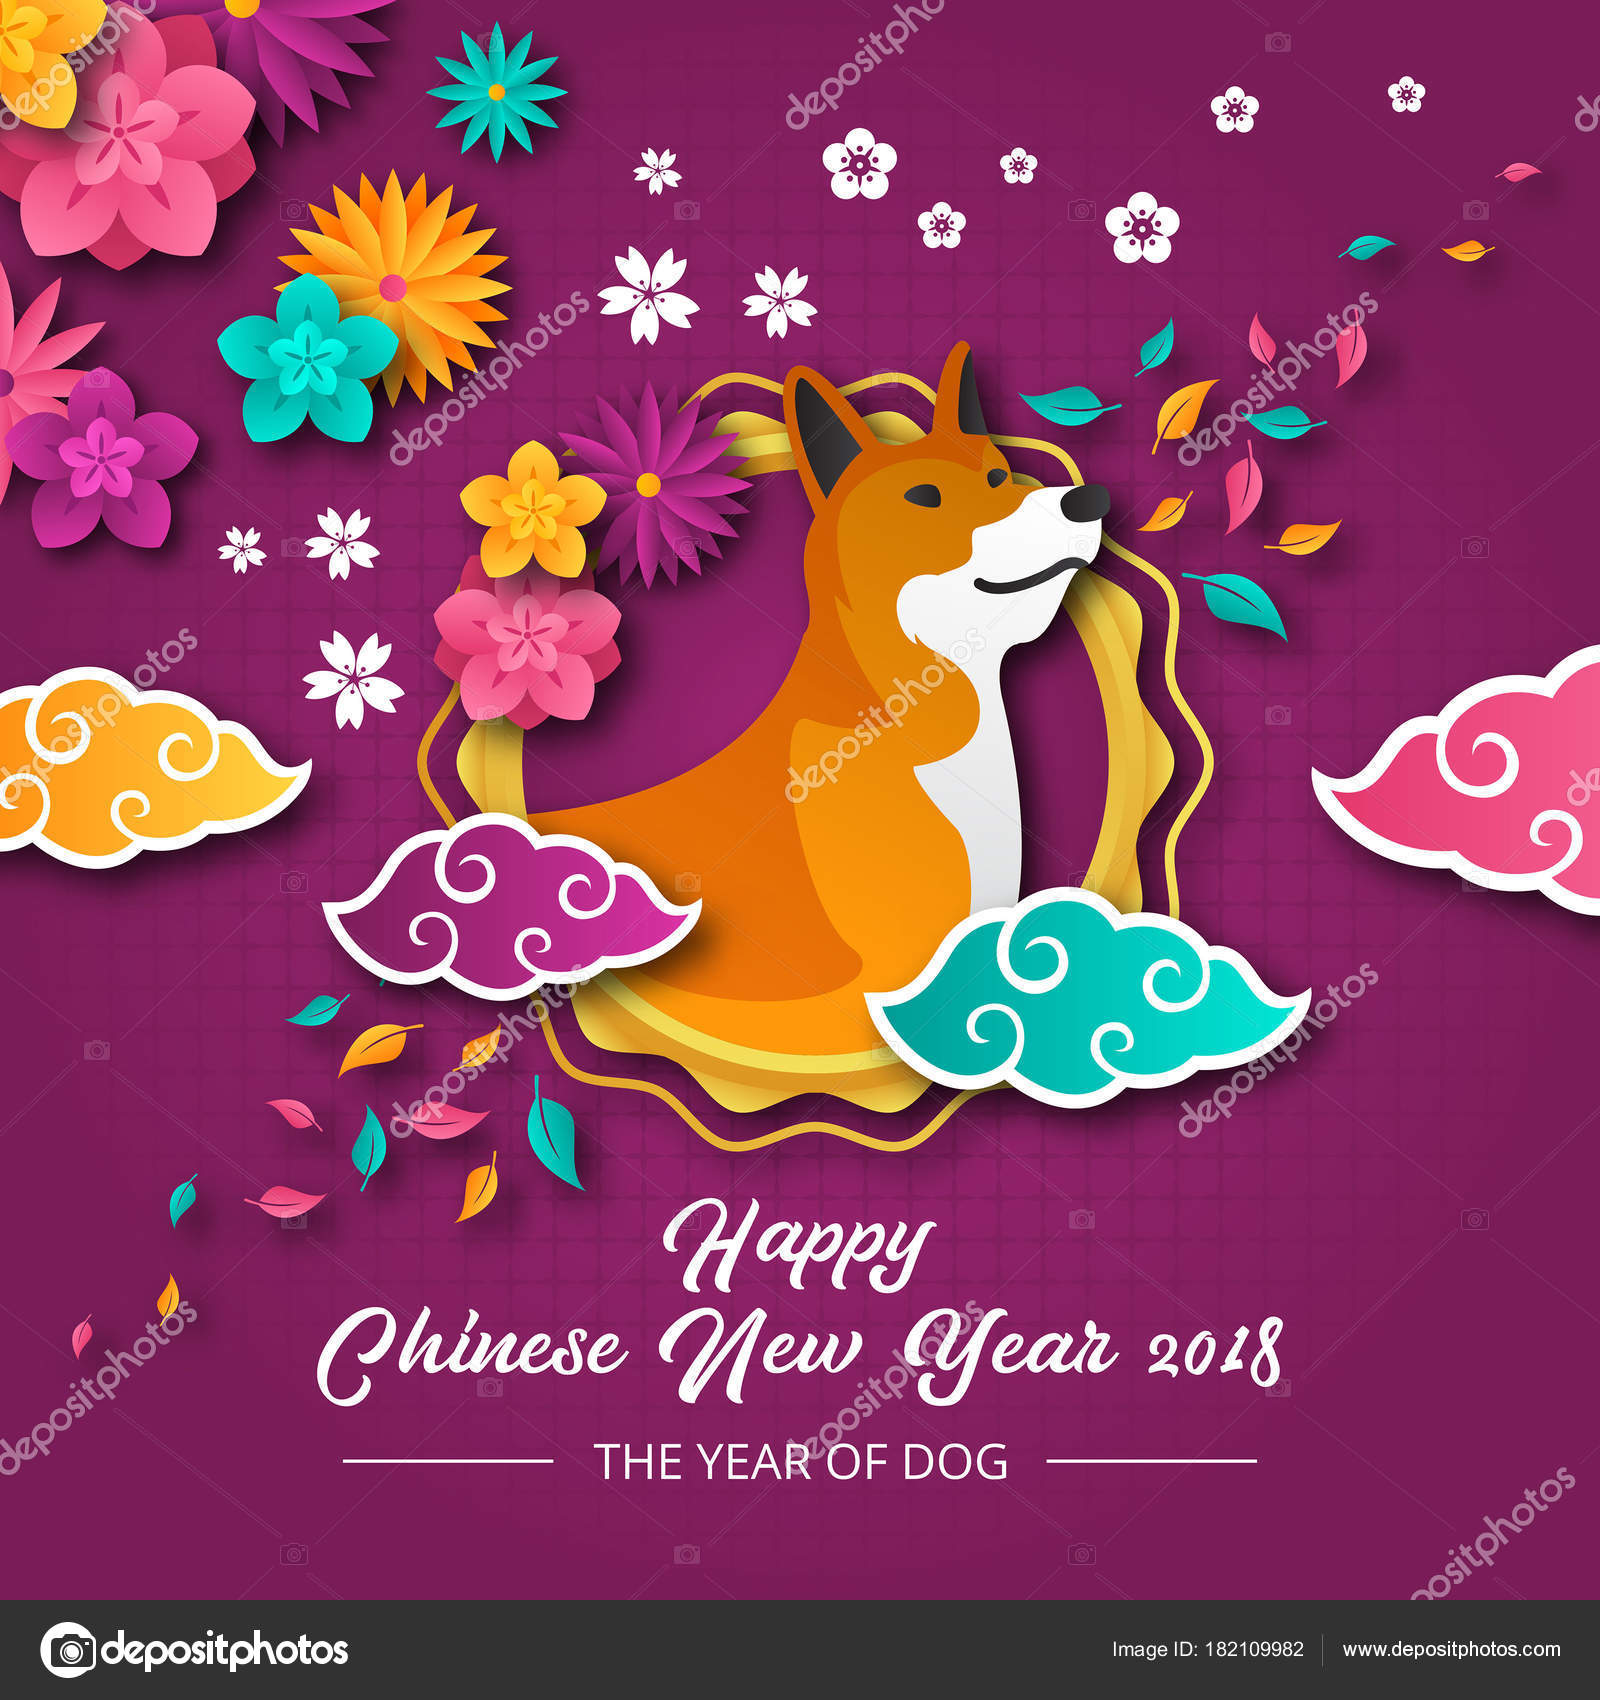 elegant chinese new year 2018 year of dog paper art banner and card design template suitable for social media banner flyer card party invitation and